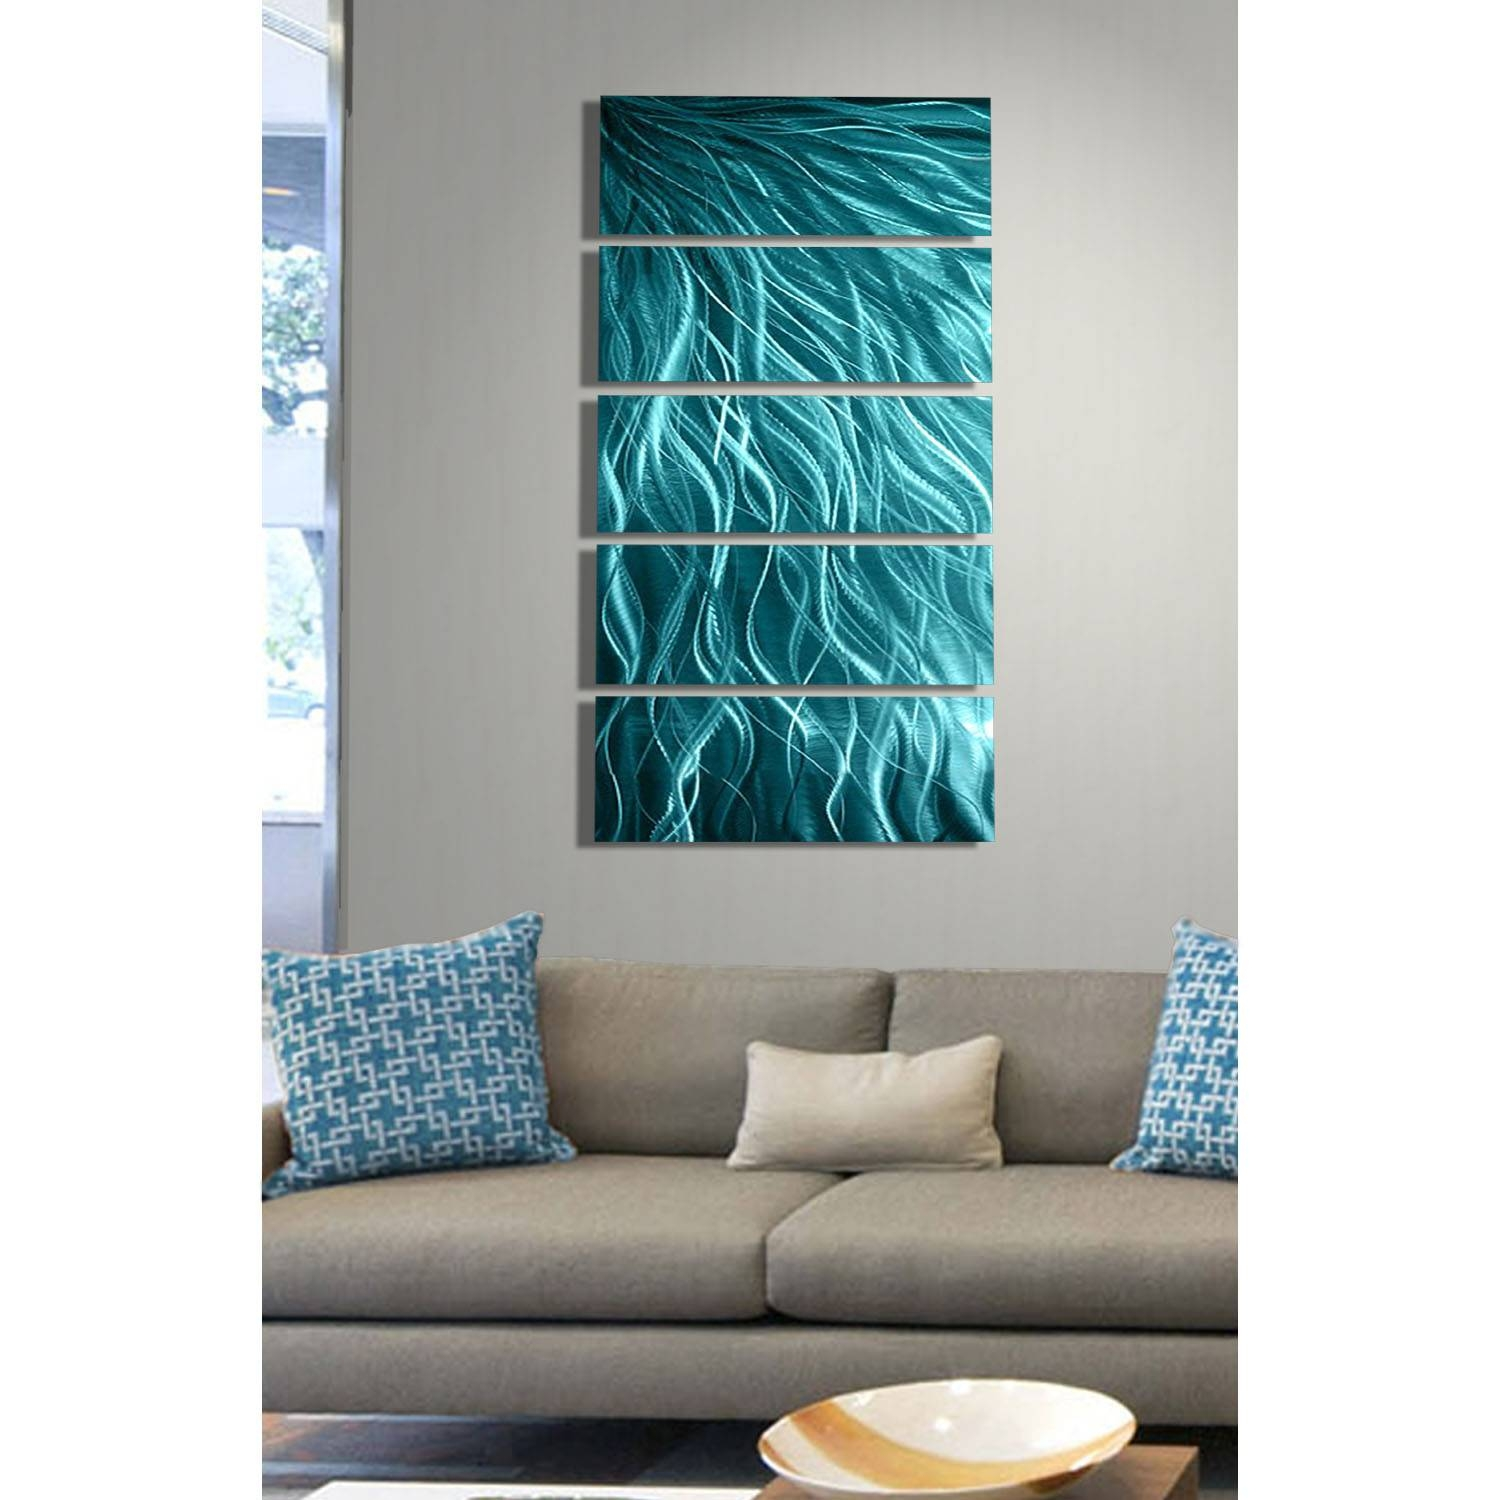 Aqua Sea Grass – Aqua Blue Metal Wall Art – 5 Panel Wall Décor In Most Up To Date Green Metal Wall Art (View 11 of 20)